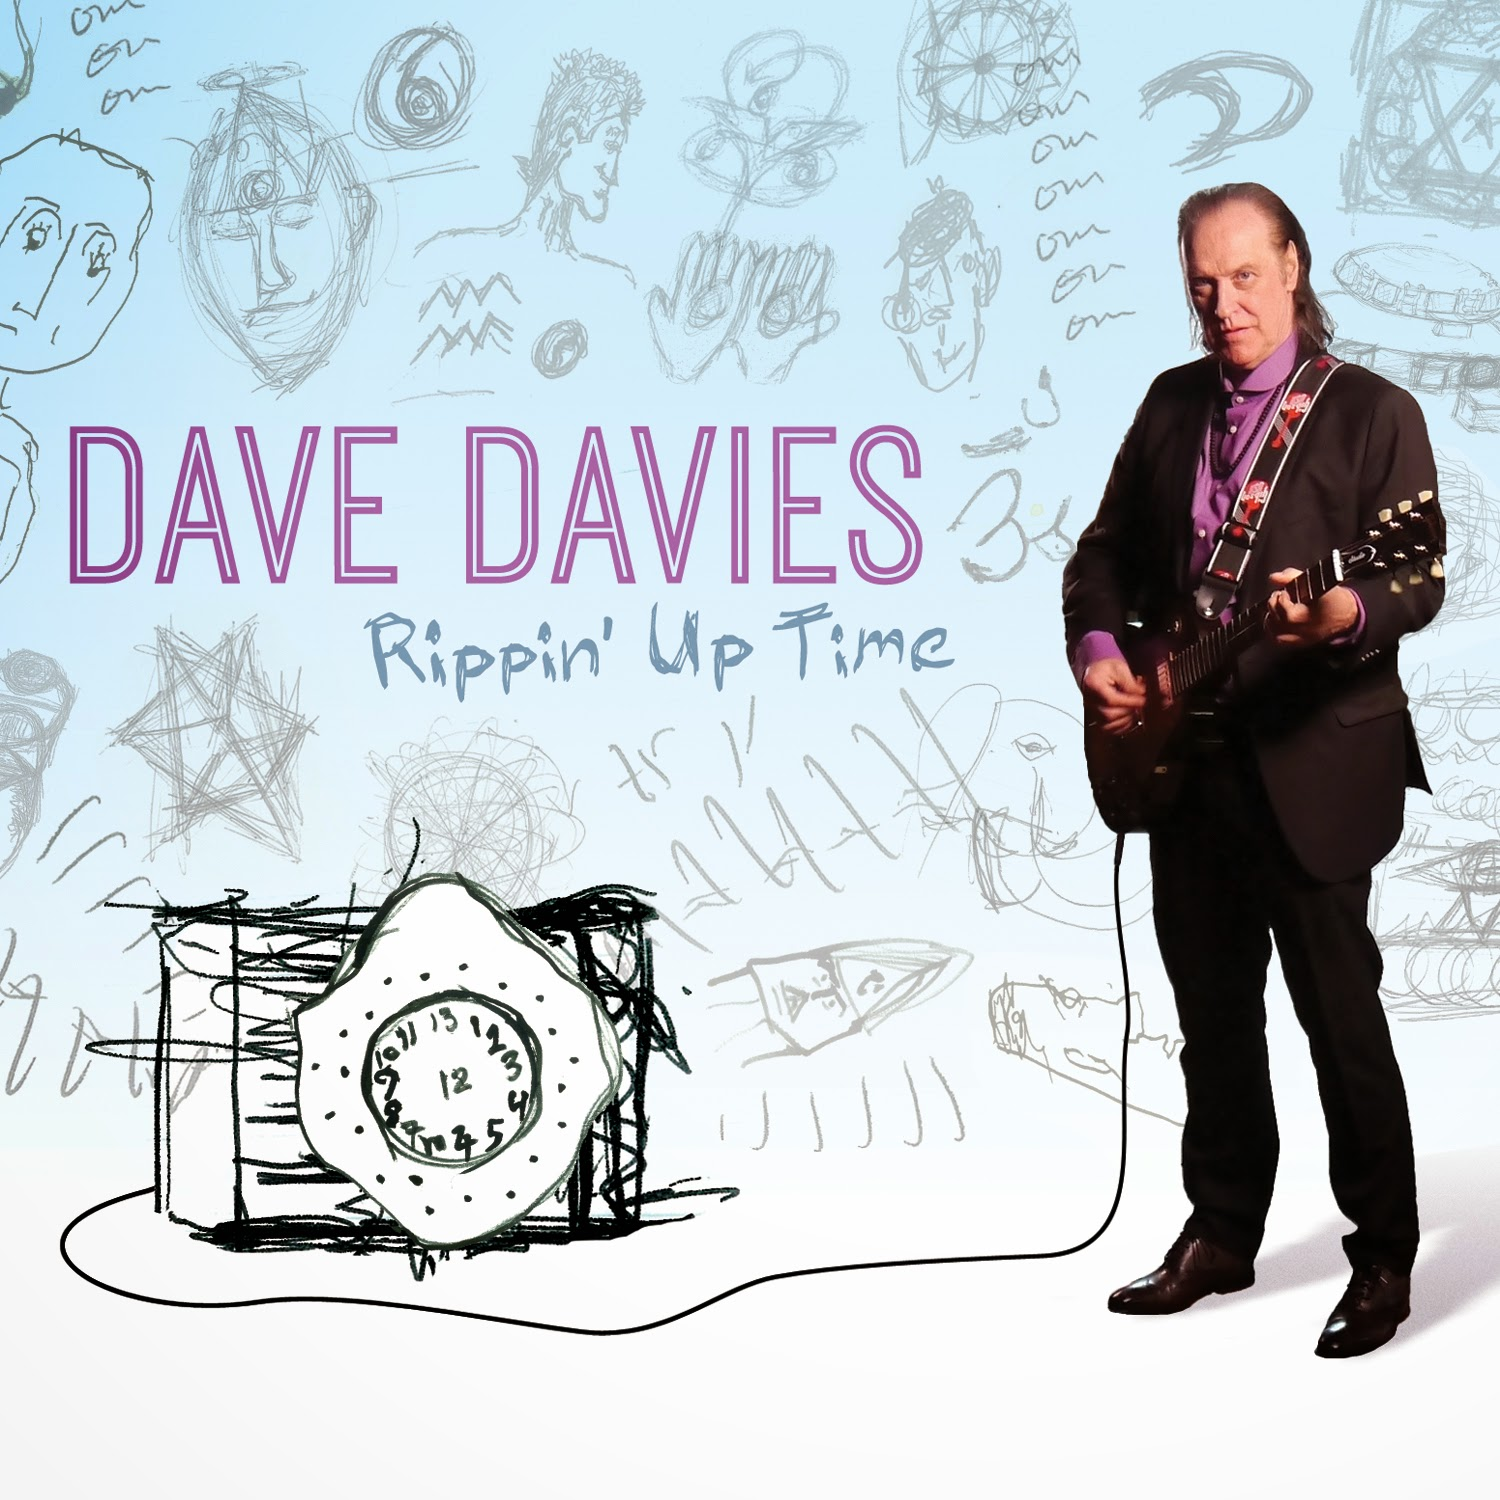 Dave Davies' Rippin' Up Time